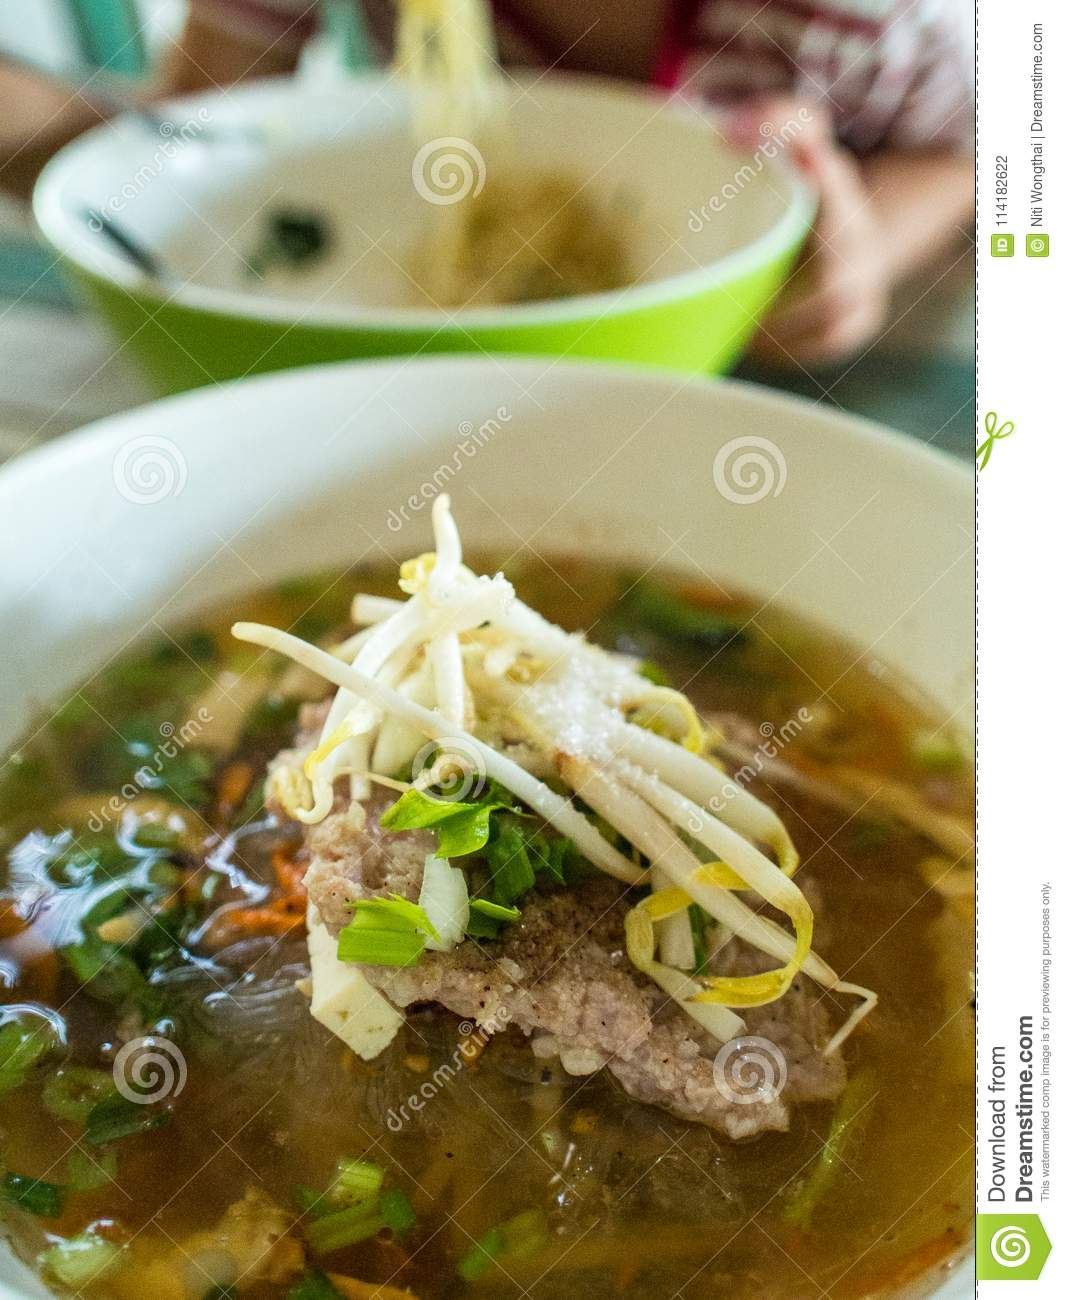 Vermicelli noodle soup with pork and vegetables in traditional r